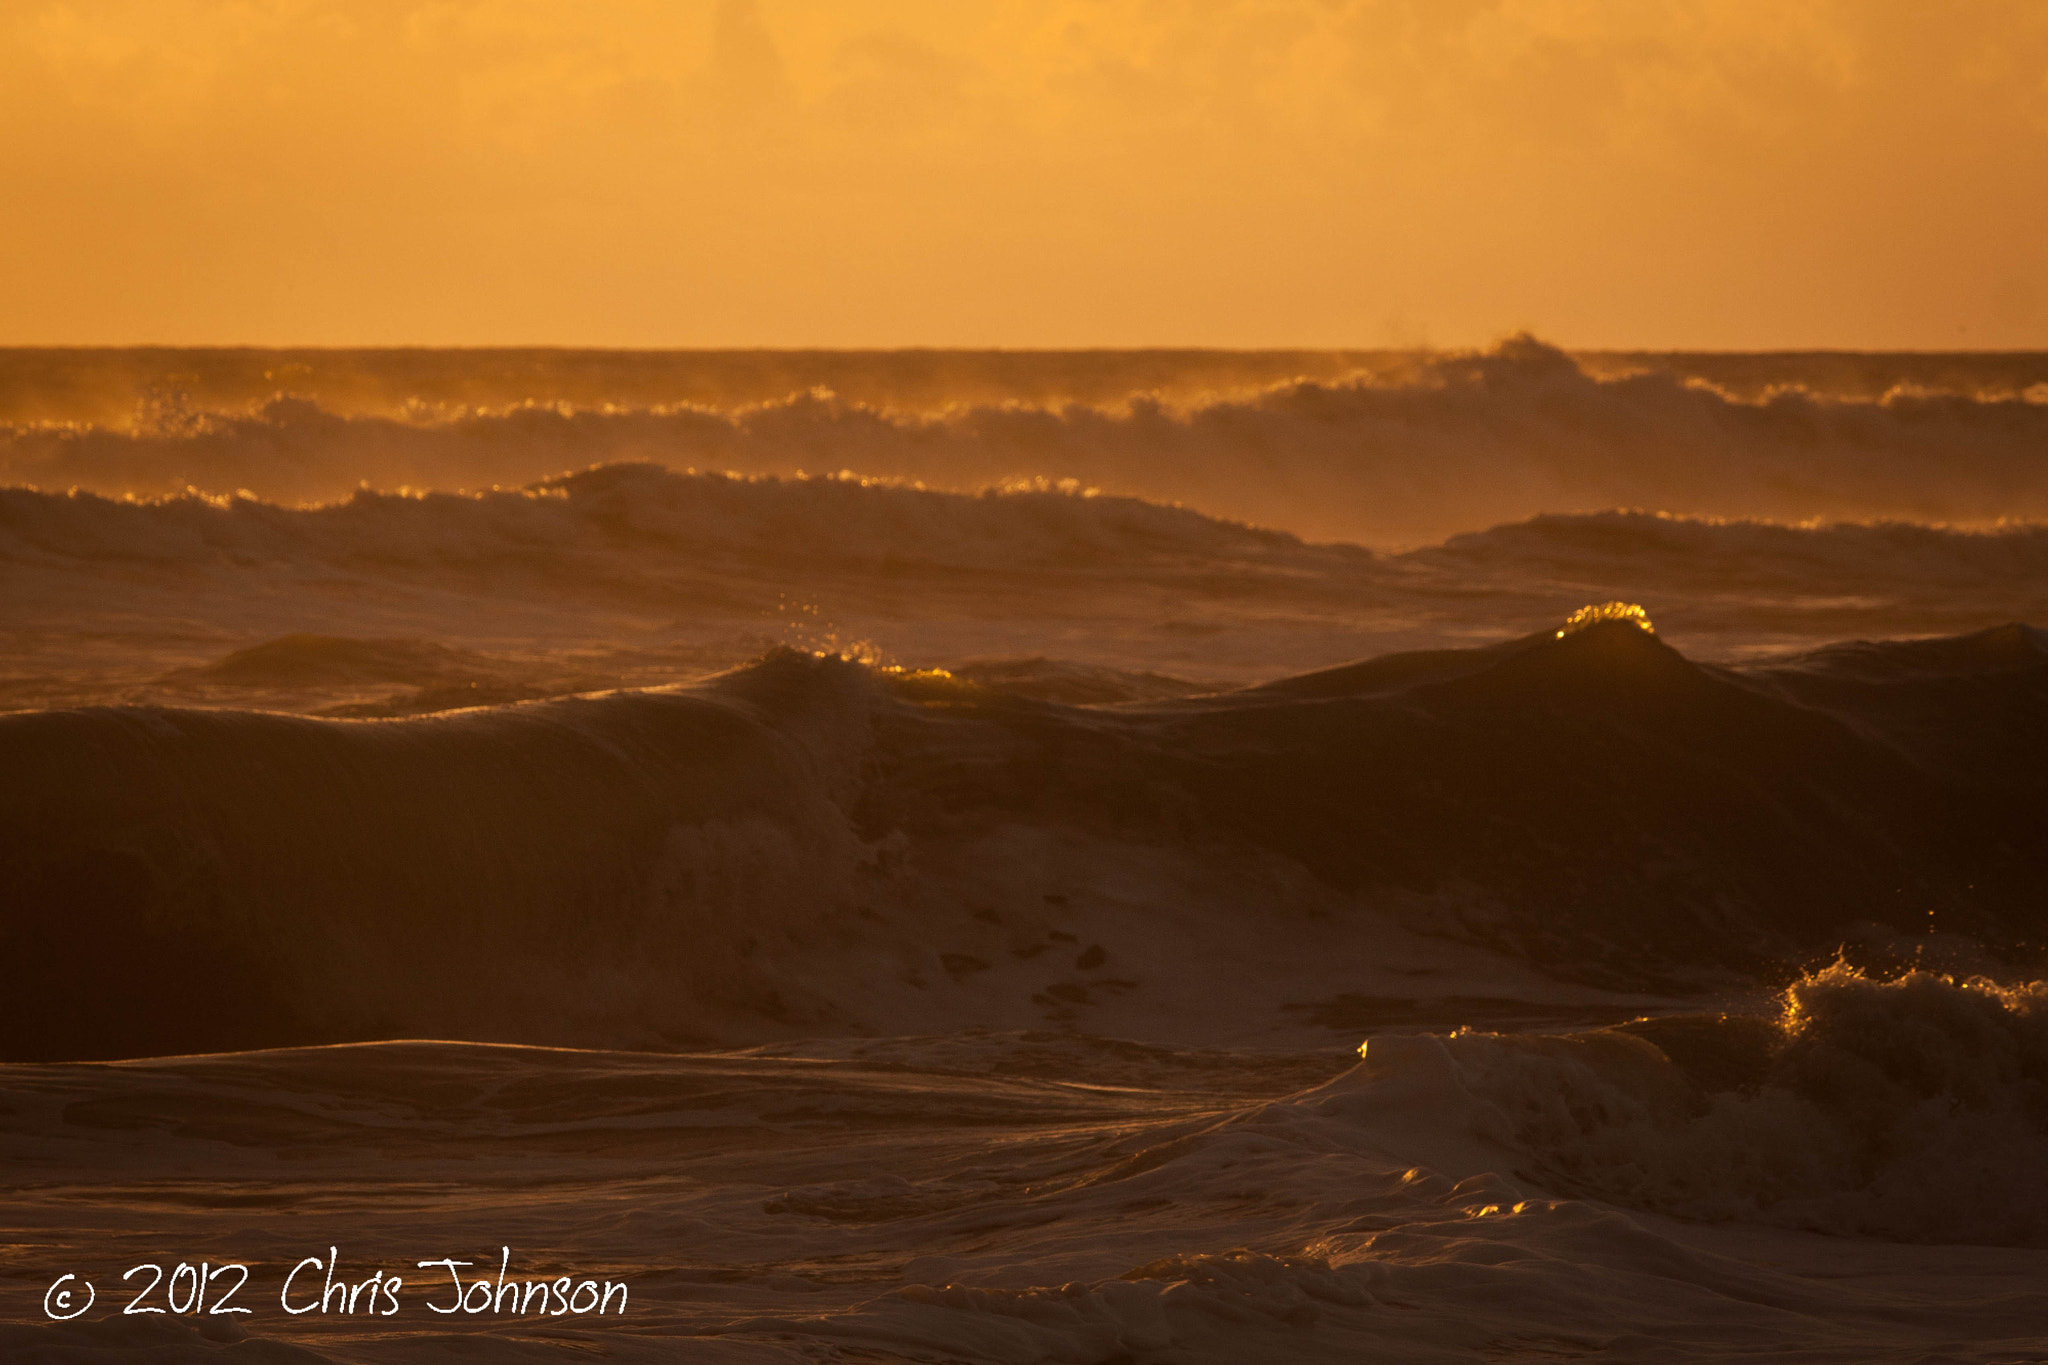 Photograph Golden sea by Chris Johnson on 500px